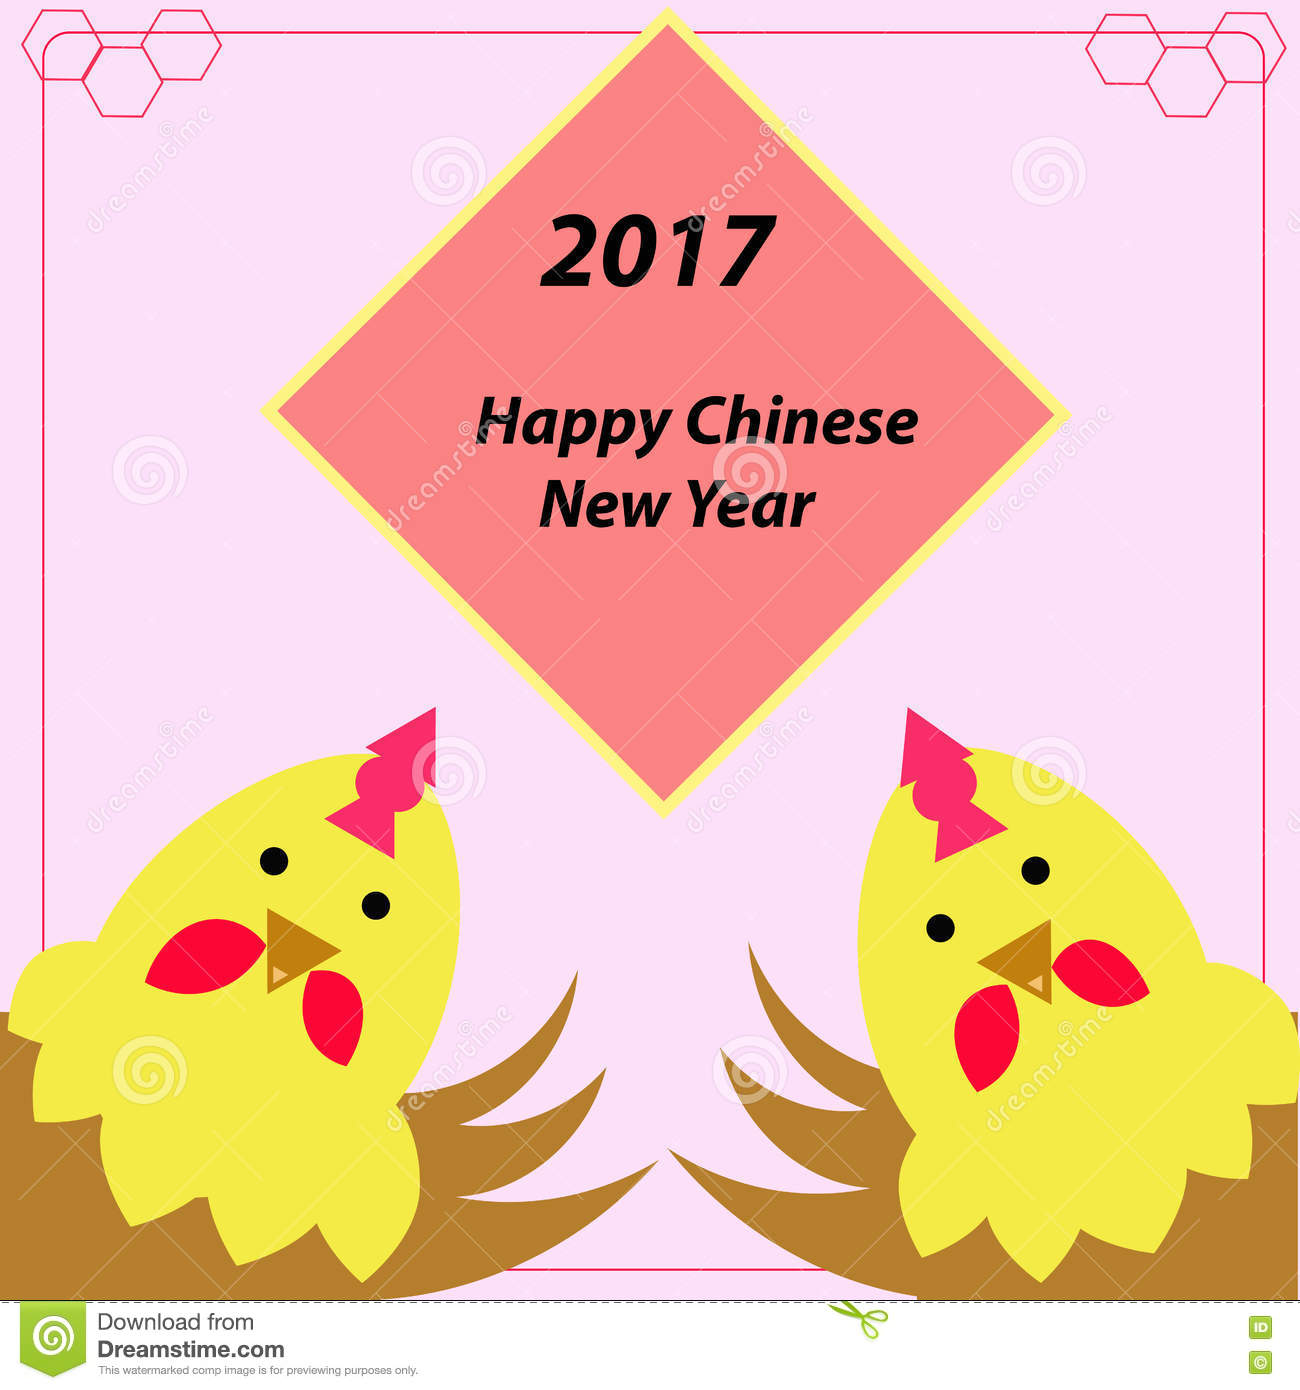 Chinese new year greetings stock vector illustration of vector download chinese new year greetings stock vector illustration of vector 80007007 m4hsunfo